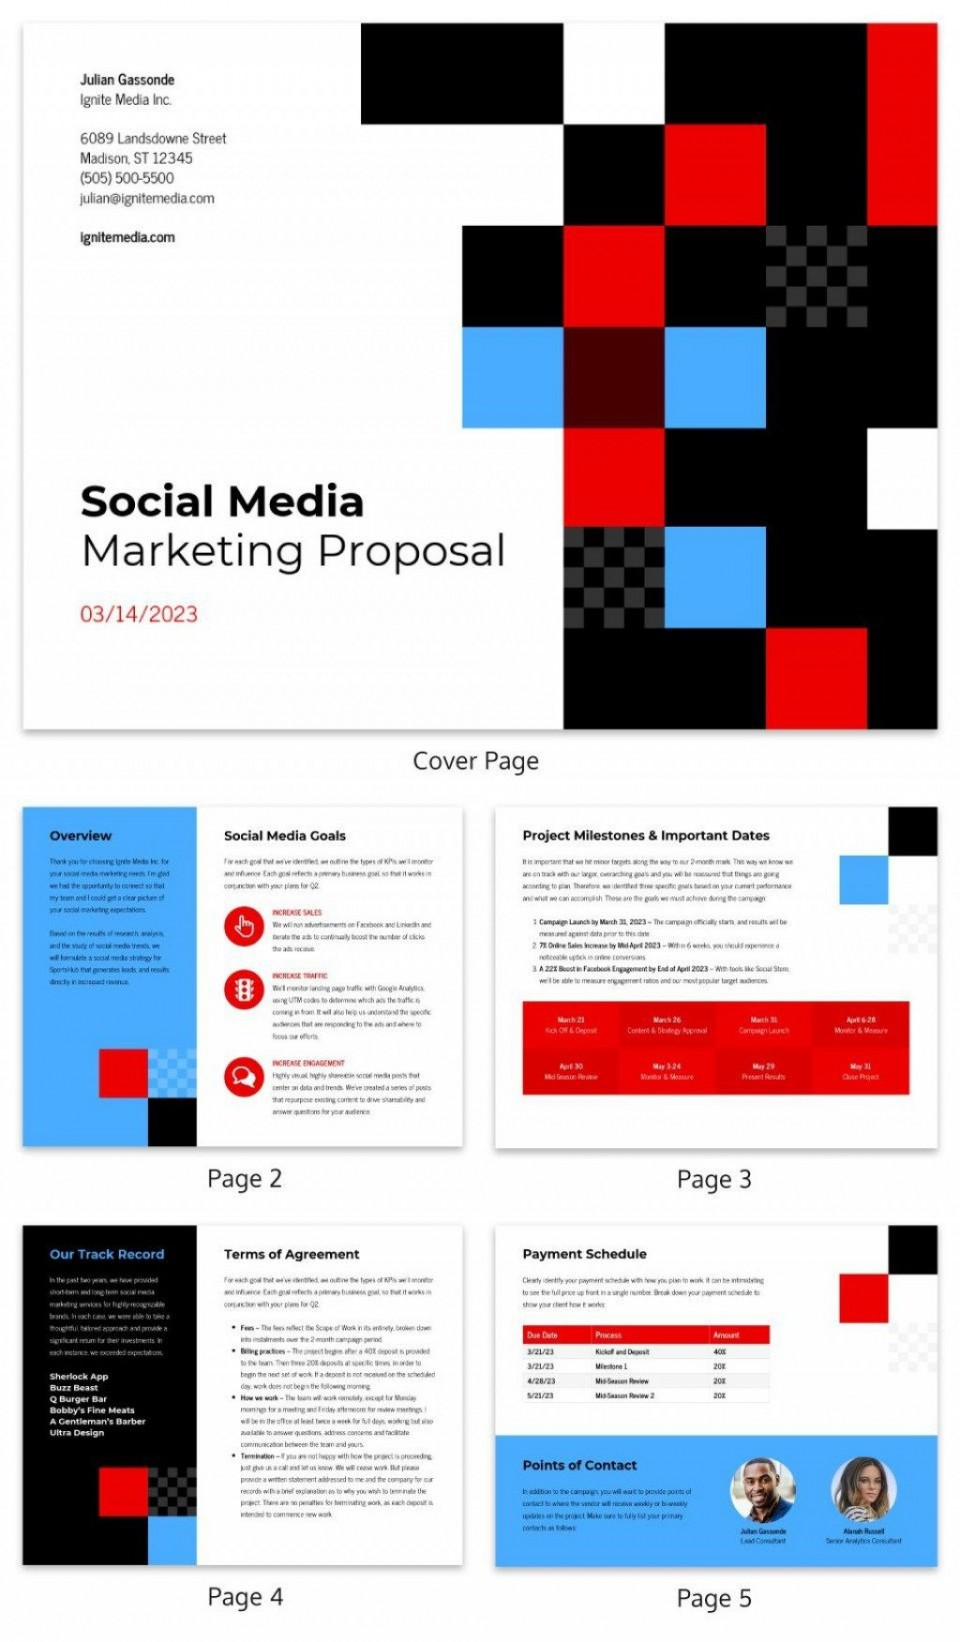 004 Fascinating Social Media Proposal Template Ppt High Def 960